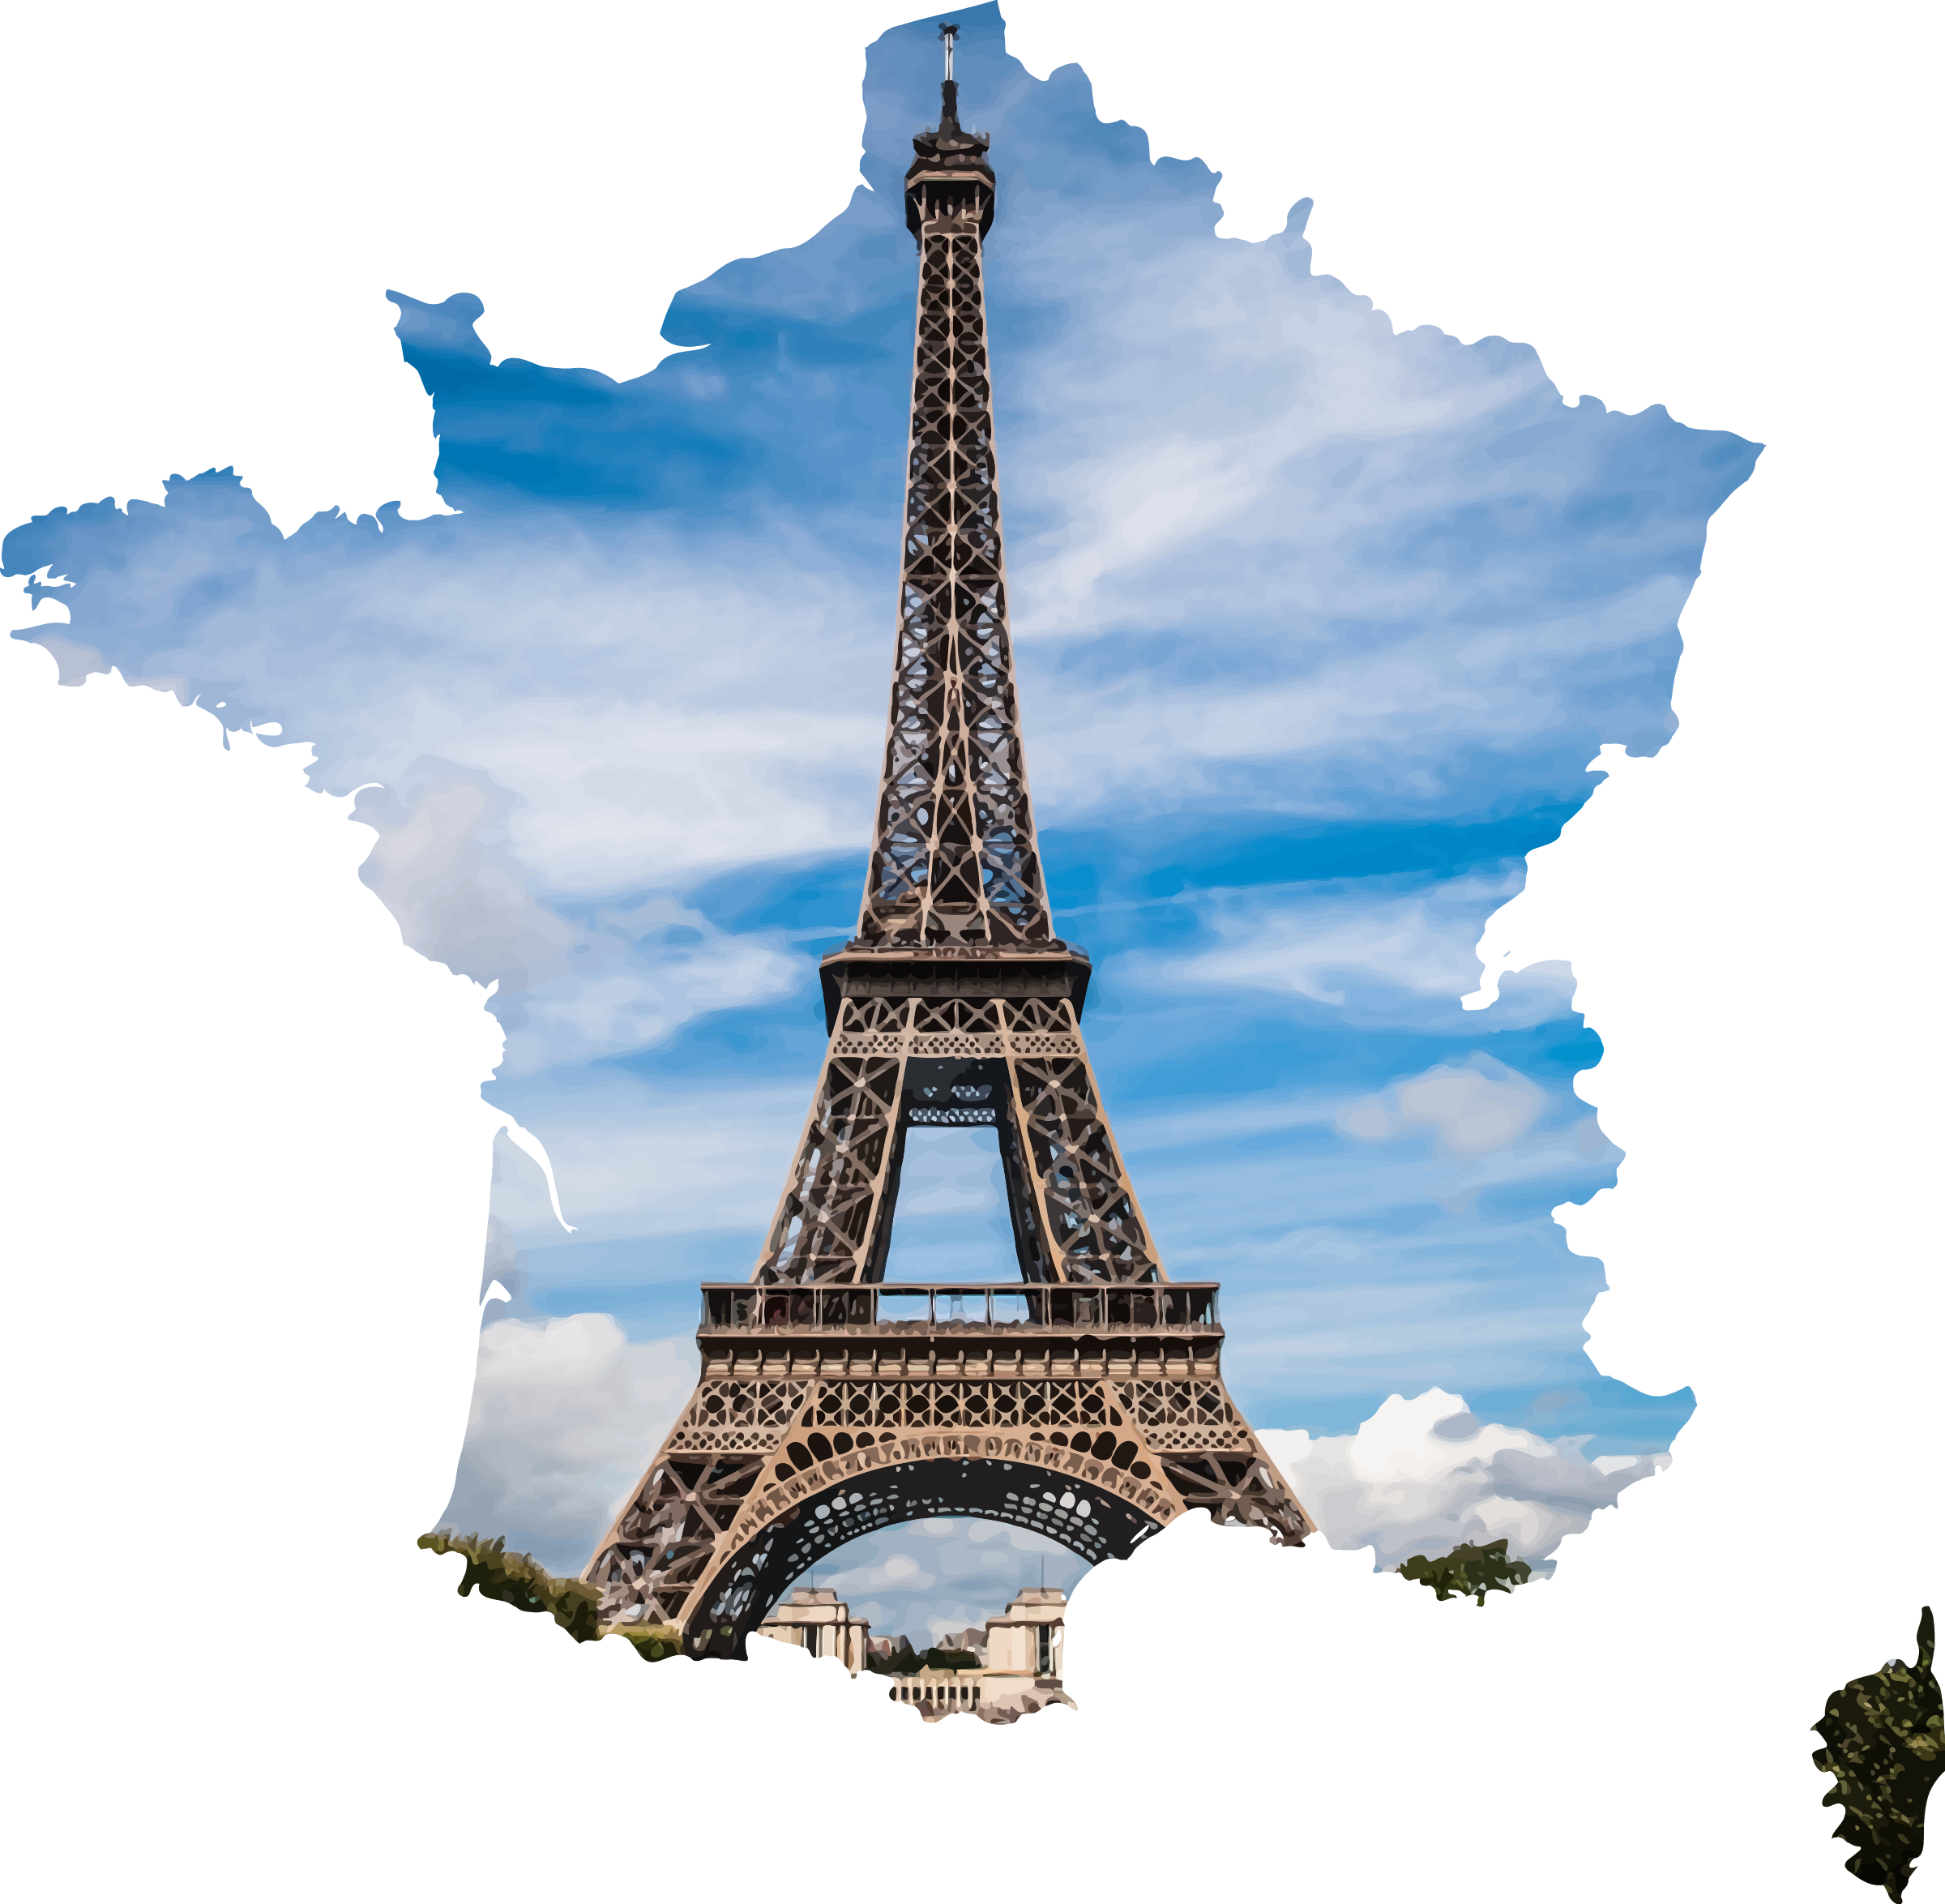 French eiffel tower clipart freeuse stock Eiffel tower in the Shape of France Vector Clipart image - Free ... freeuse stock